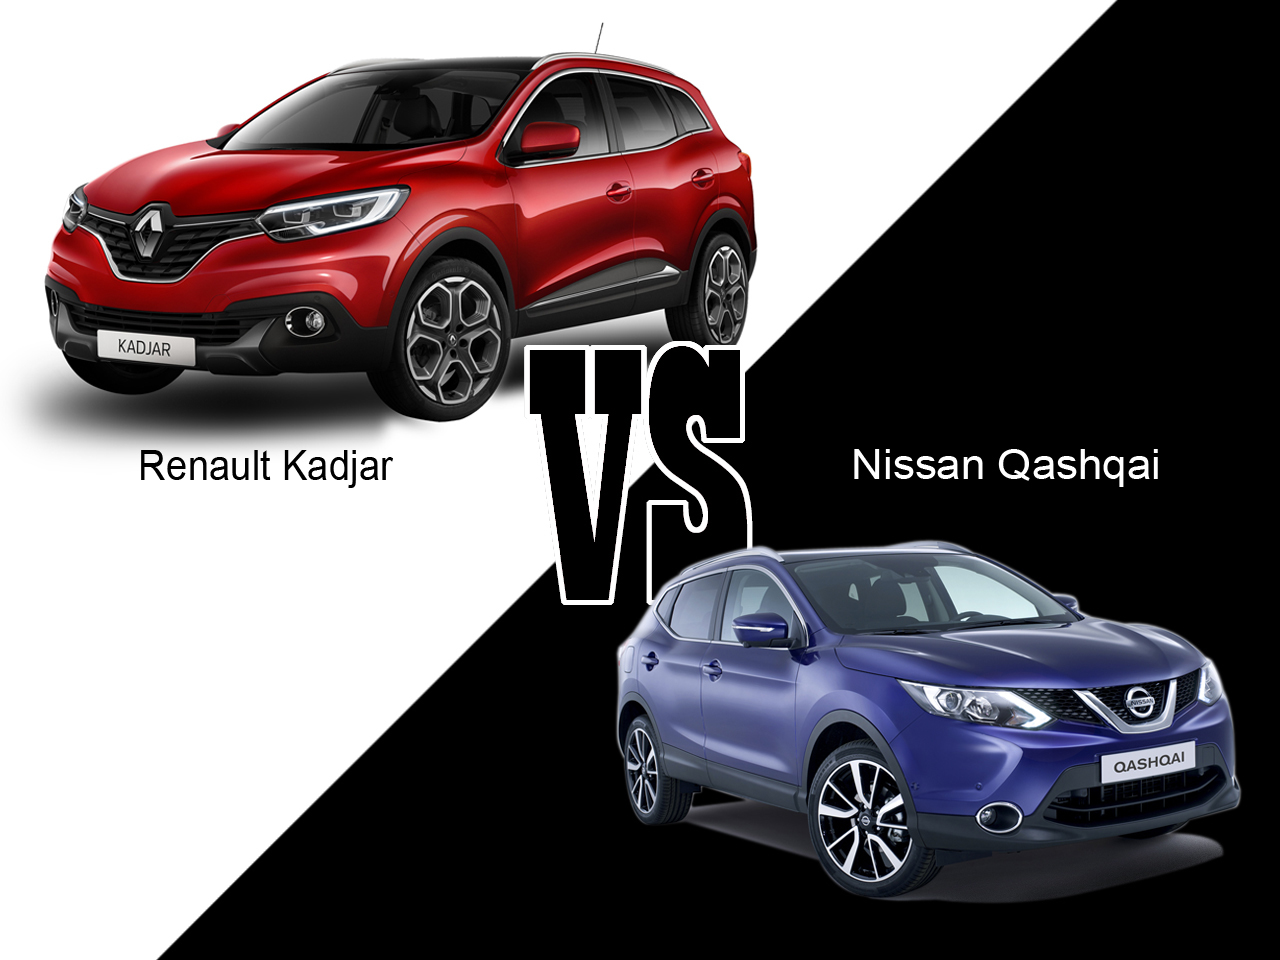 renault kadjar vs nissan qashqai duel serr l 39 argus. Black Bedroom Furniture Sets. Home Design Ideas